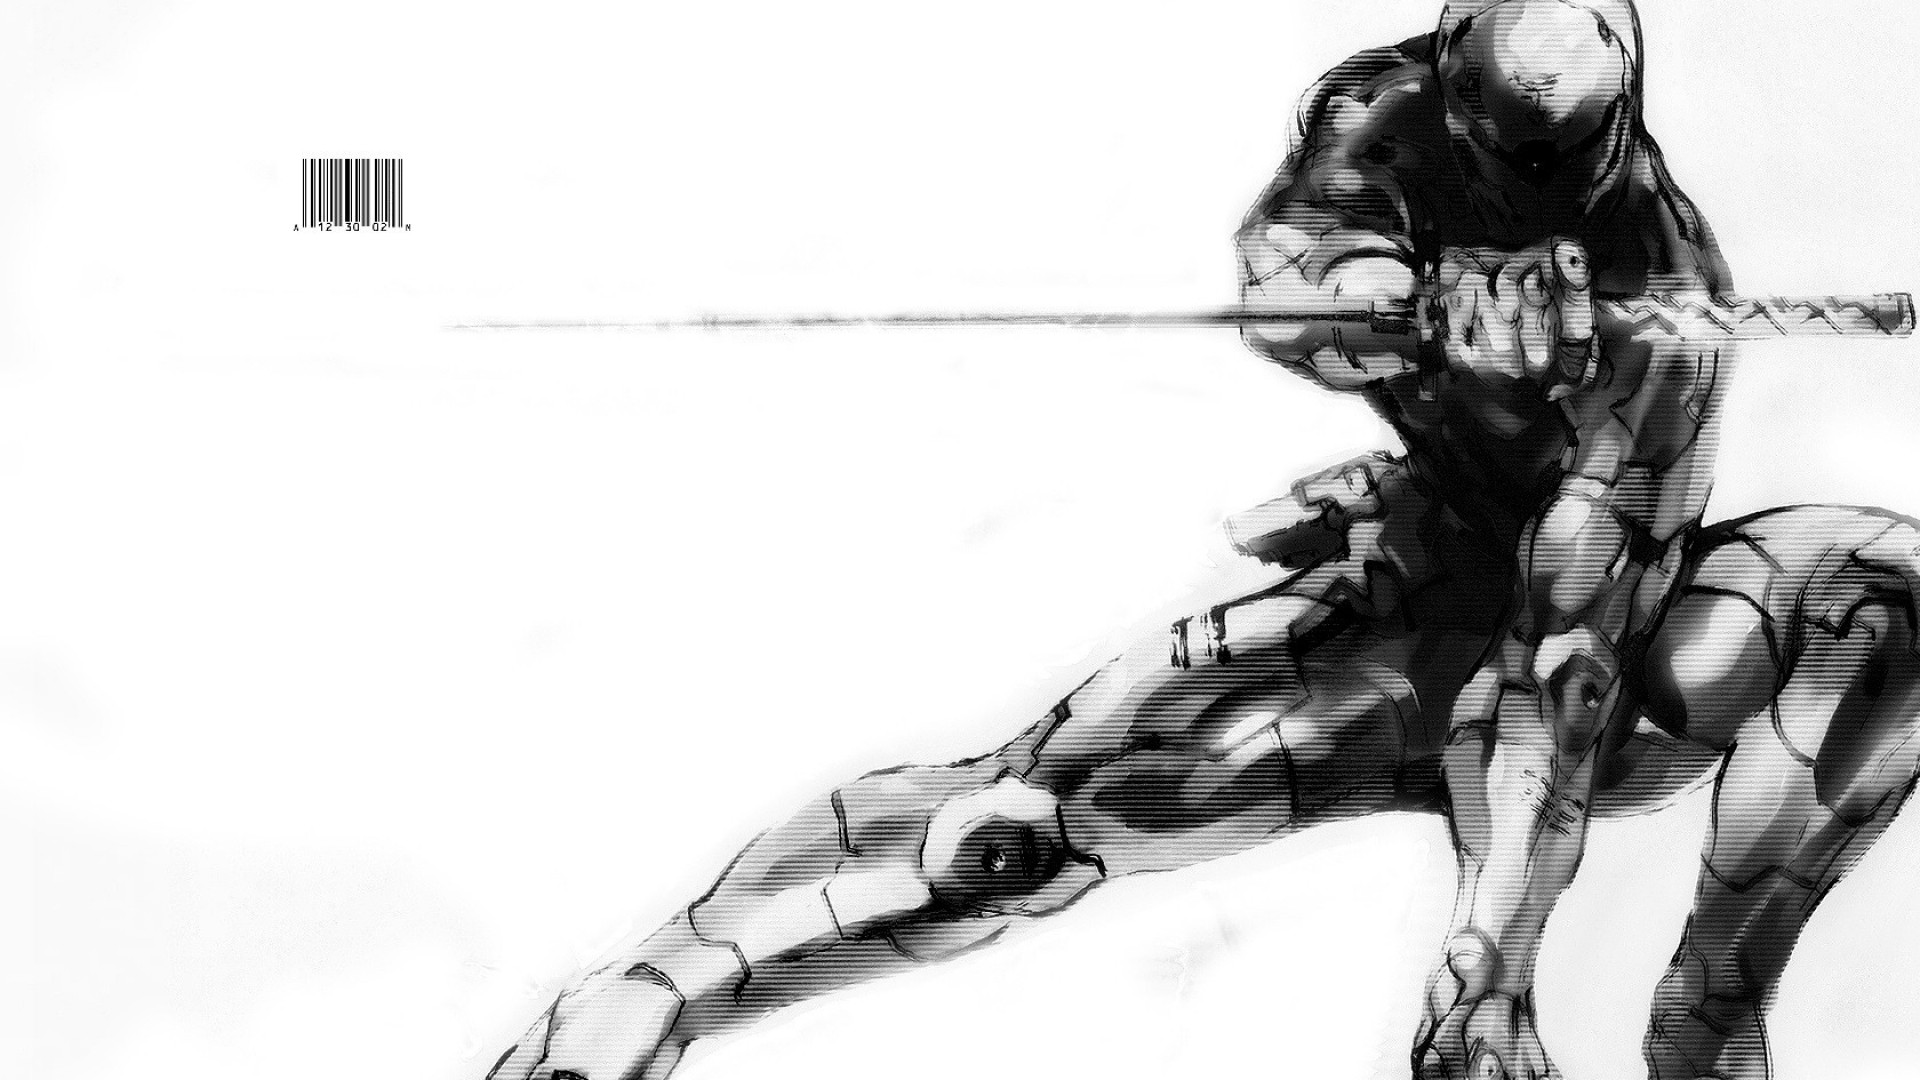 armour-black-and-white-drawings-fighter-helmets-1920x1080-1920%C3%971080-wallpaper-wp3802518